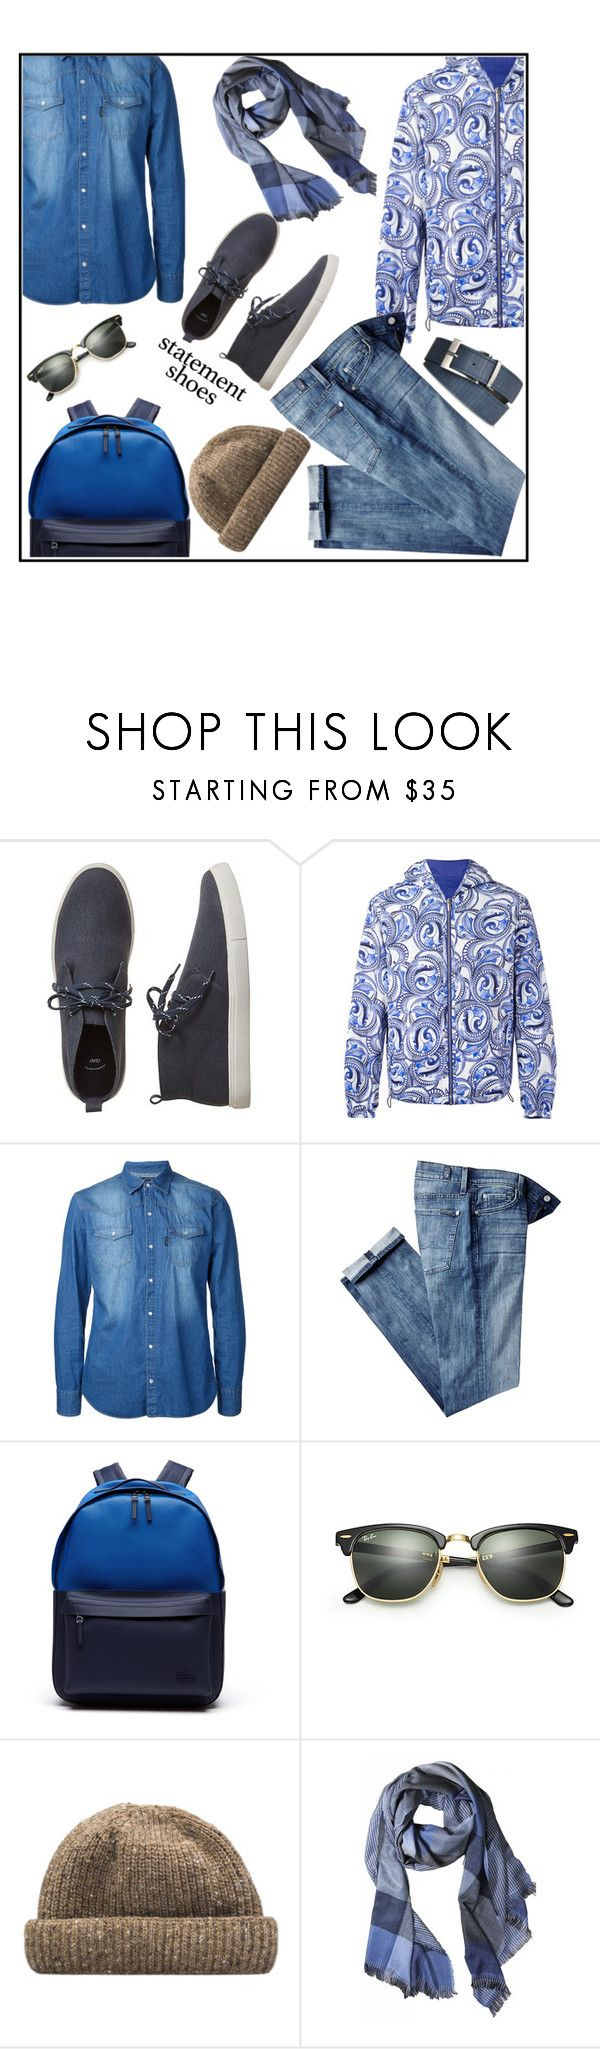 """weekend"" by kleinwillwin ❤ liked on Polyvore featuring Gap, Versace, Guild Prime, 7 For All Mankind, Lacoste, Ray-Ban, Armani Jeans, men's fashion and menswear"